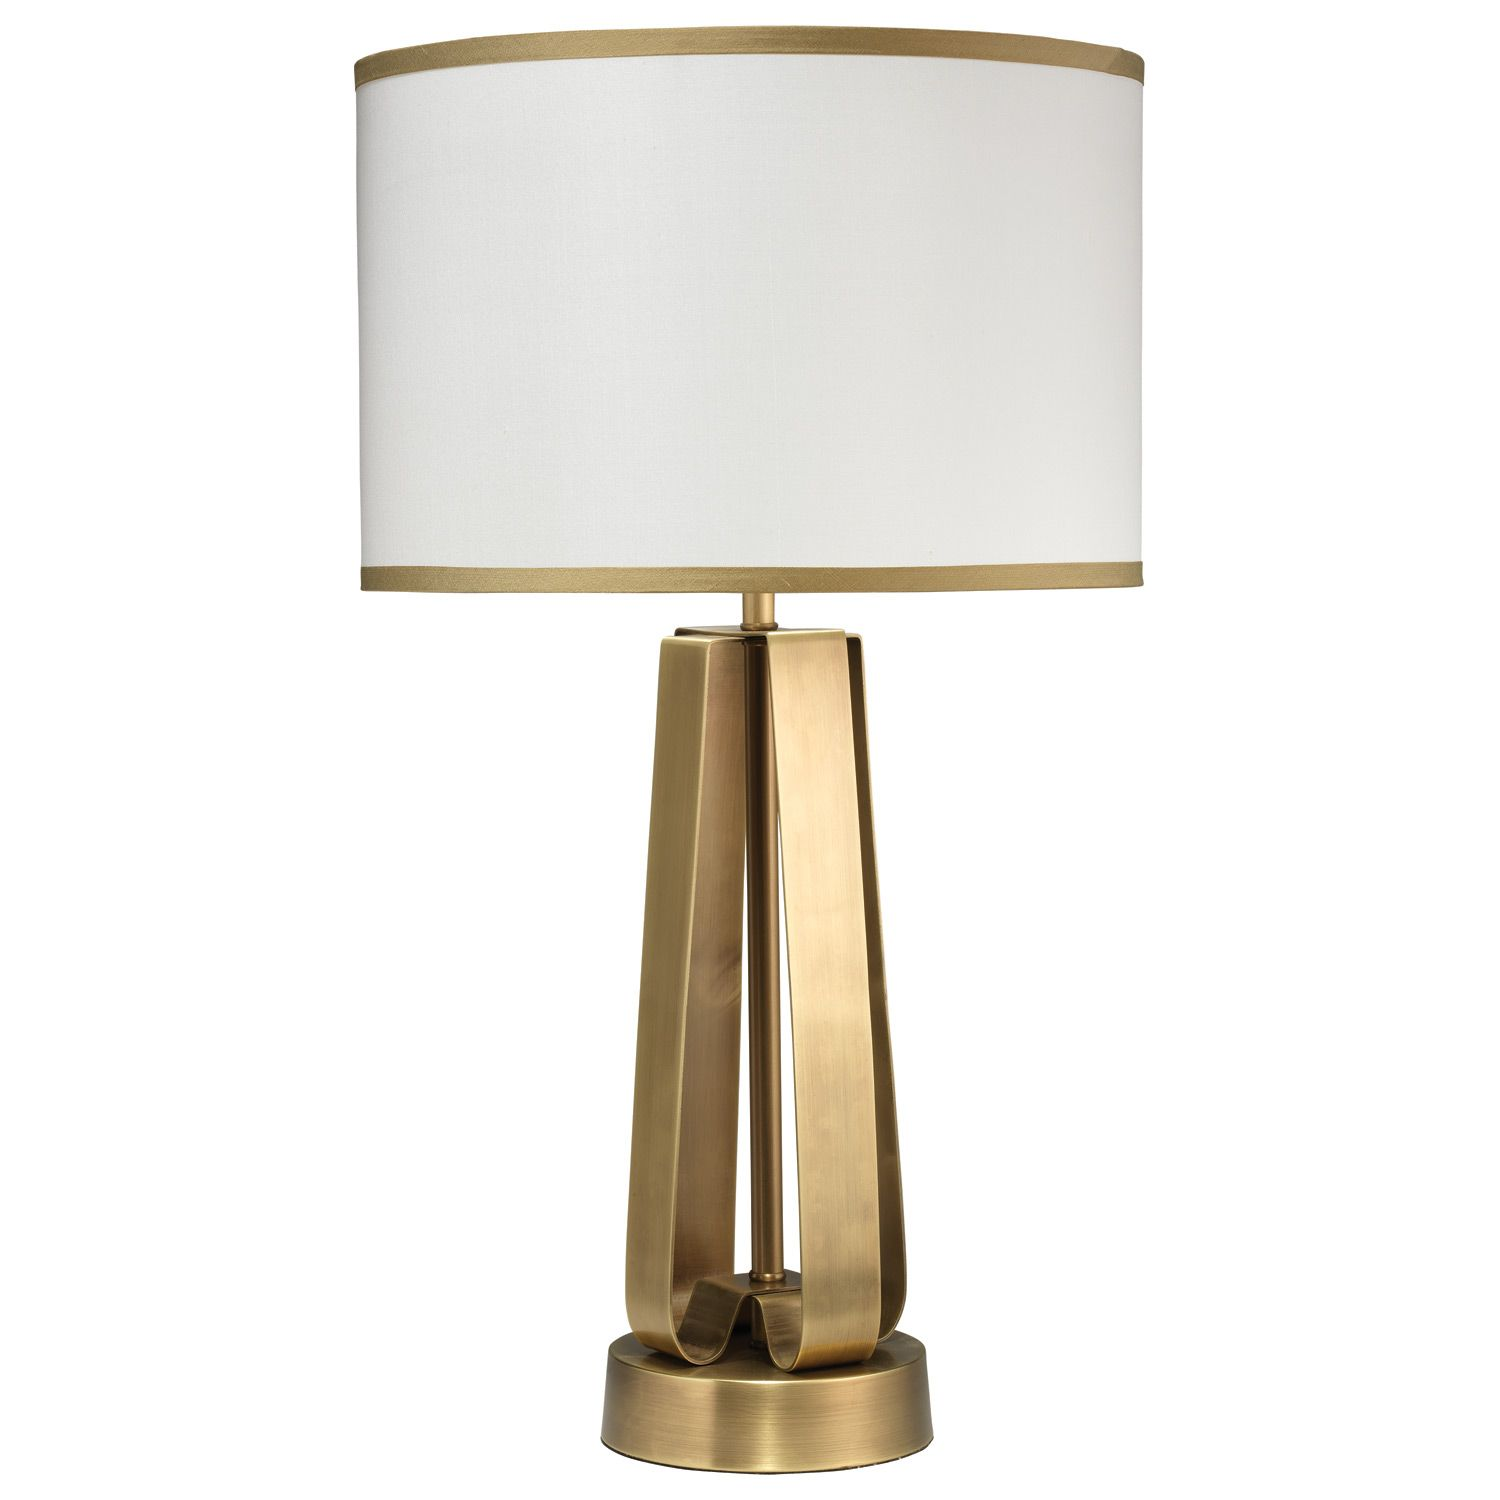 Jamie Young Strap Antique Brass Table Lamp | {New Arrivals ...